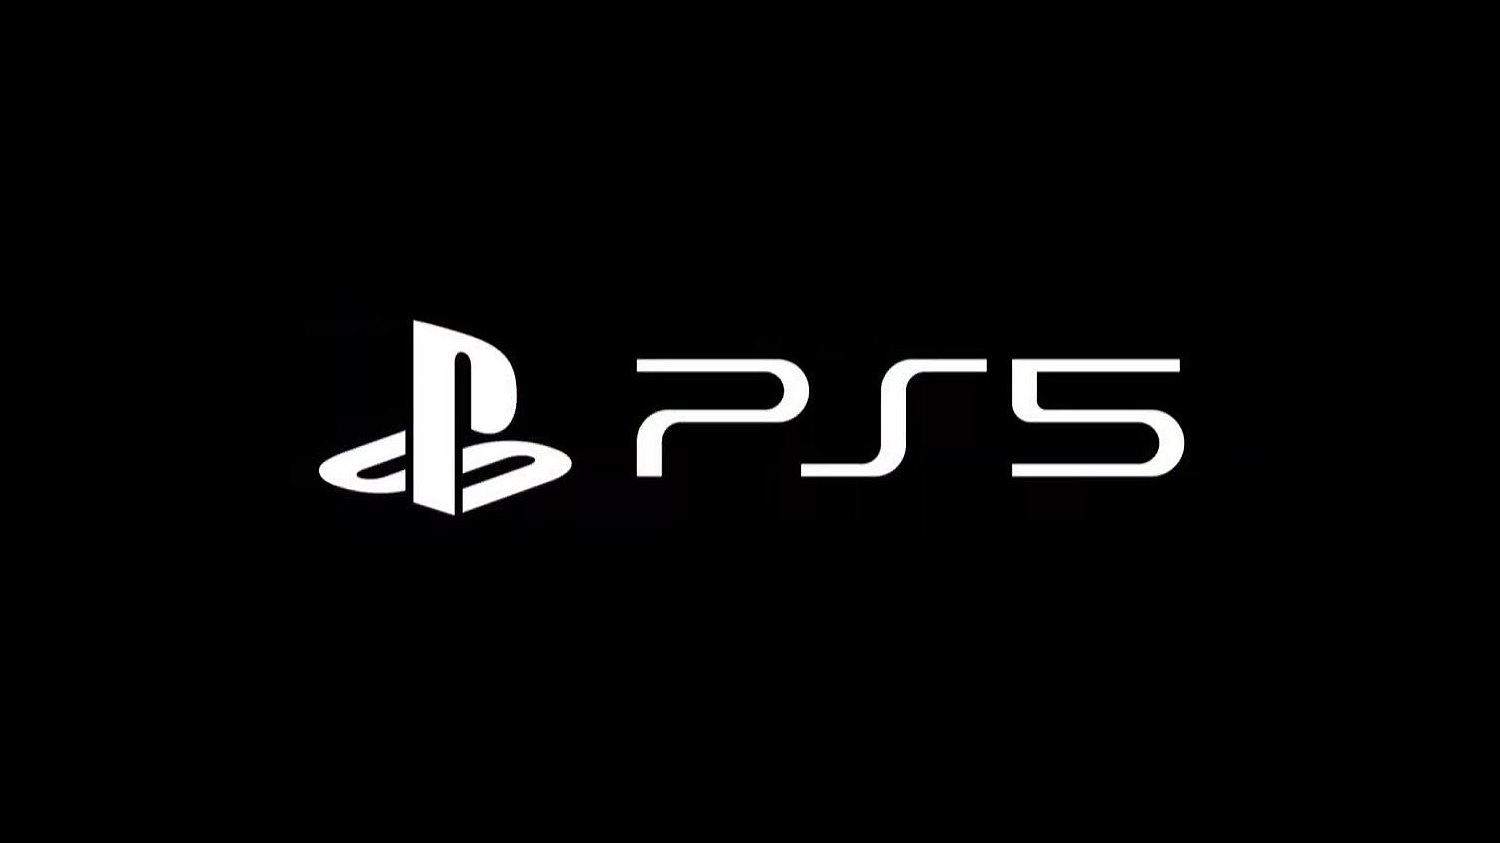 The PlayStation 5 logo has been officially unveiled 1